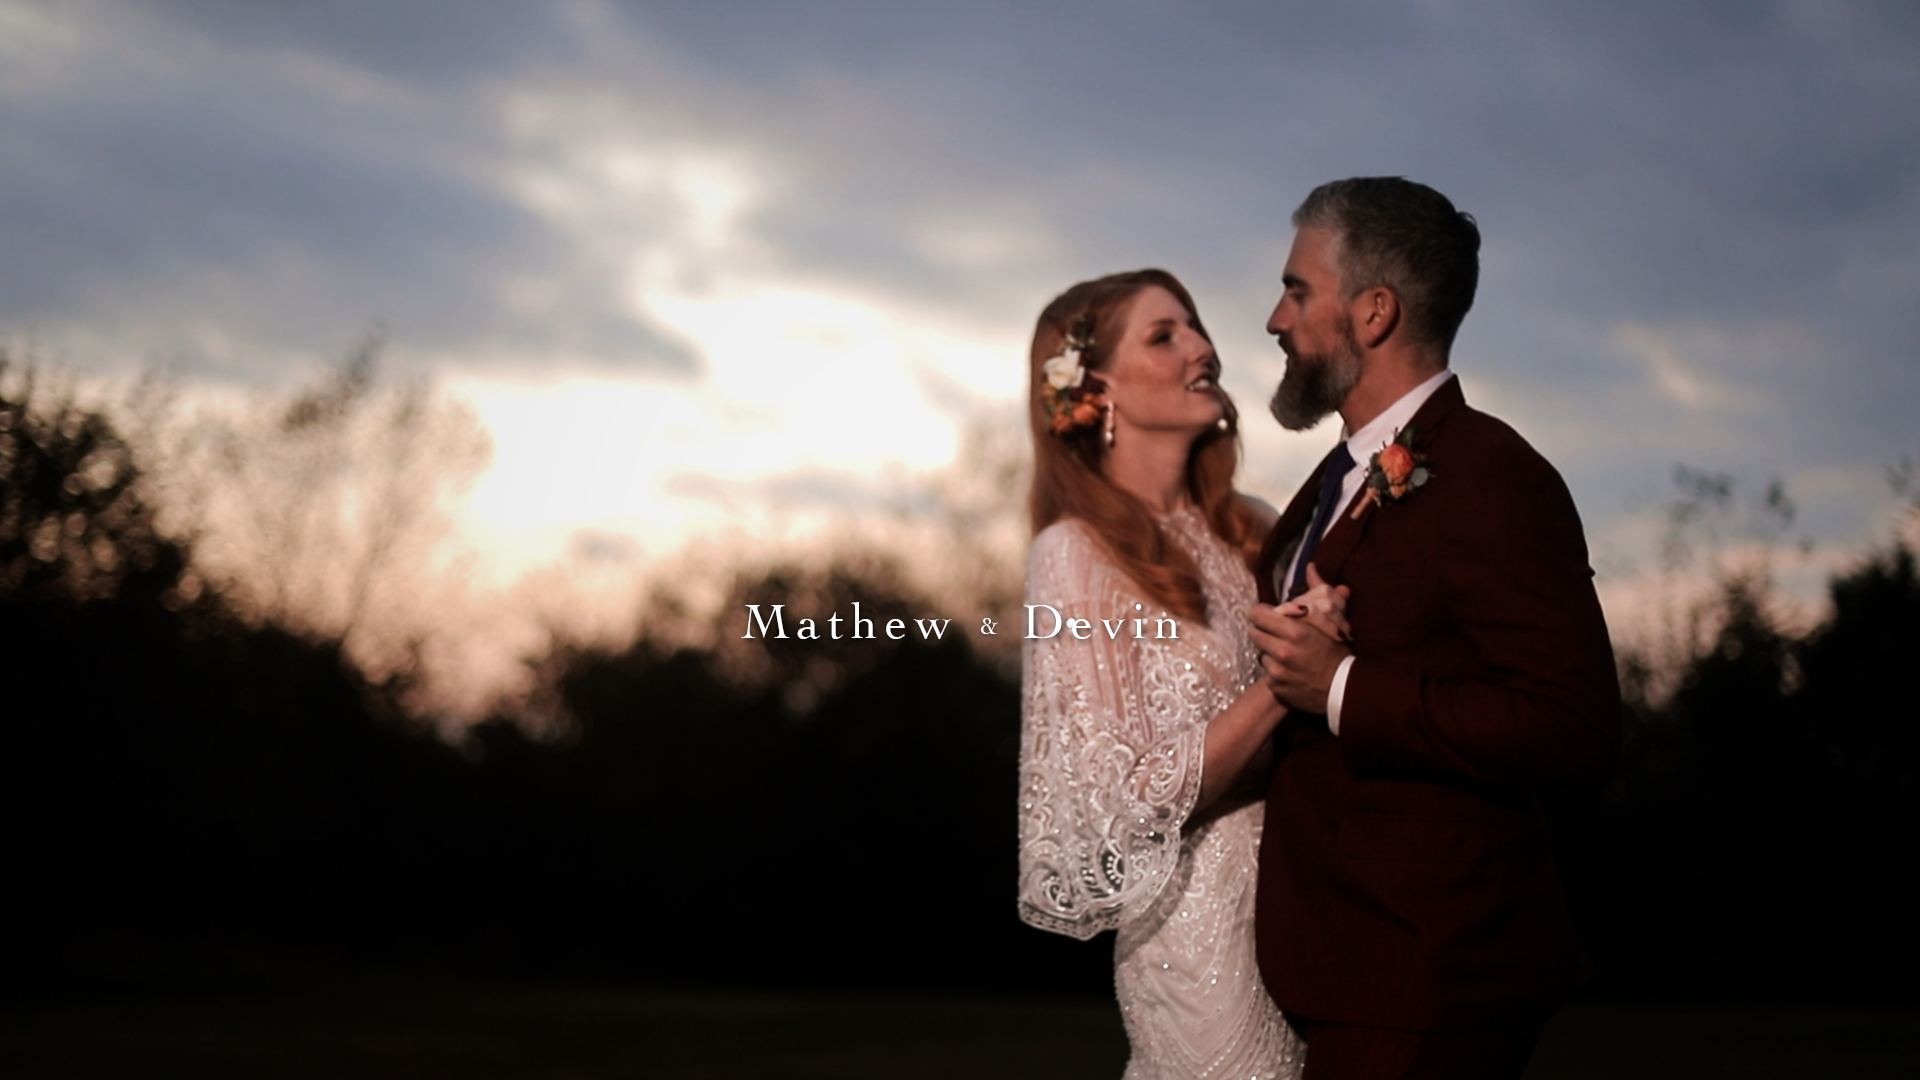 Mathew + Devin | Franklin, Tennessee | Southall Meadows